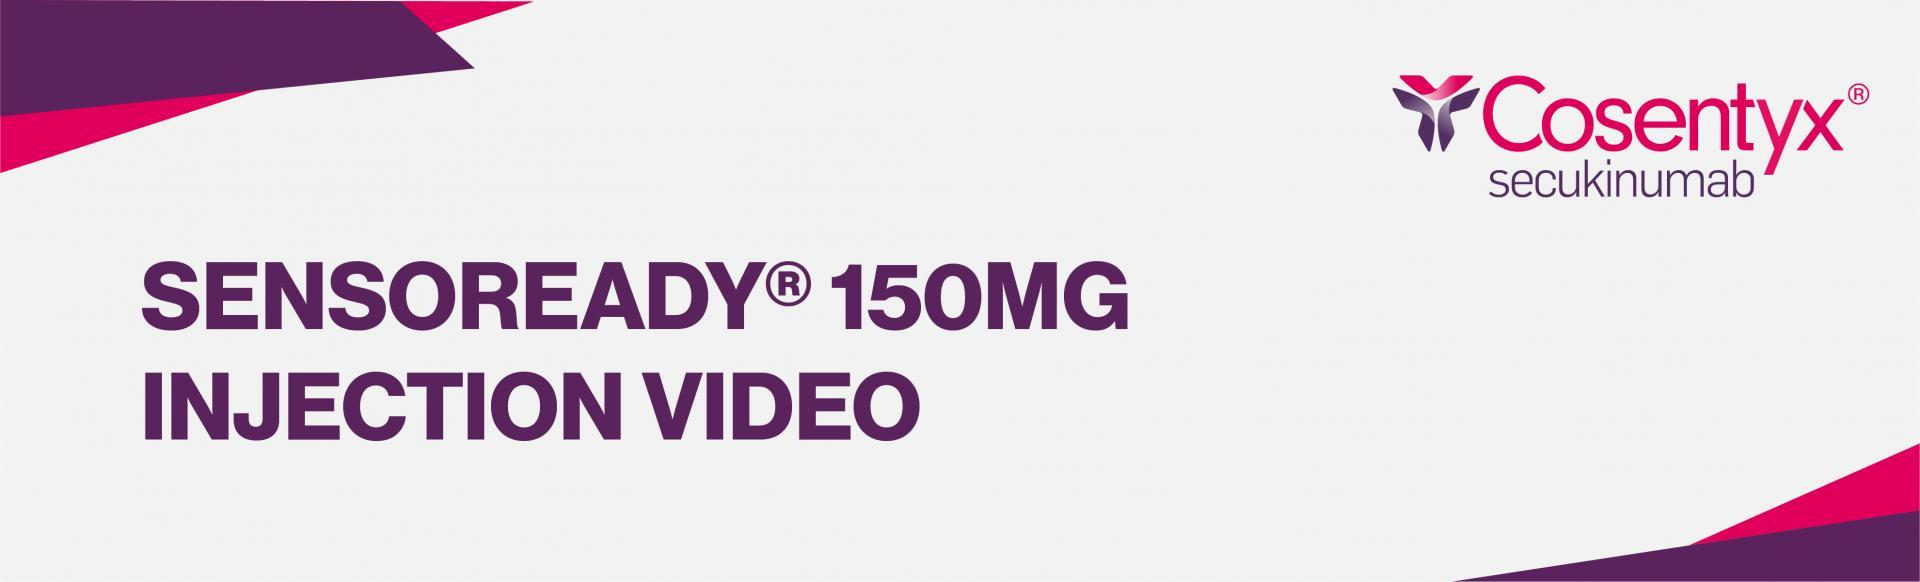 Top banner: sensoready 150mg injection video